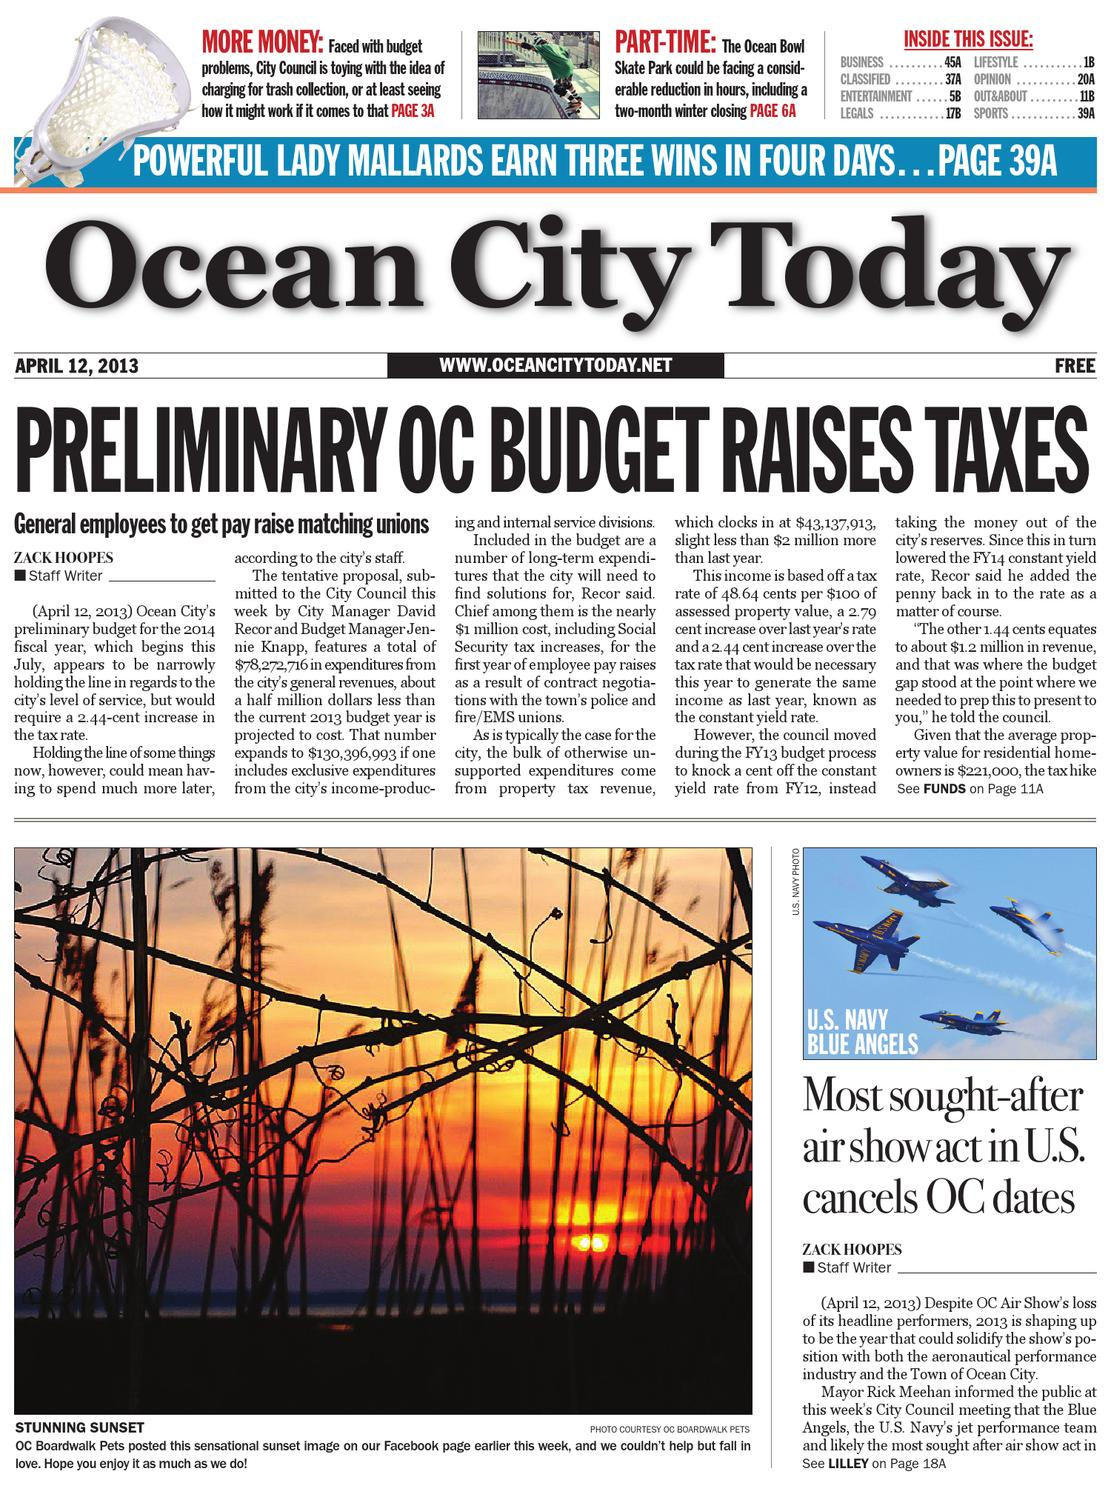 04 12 13 by ocean city today - issuu